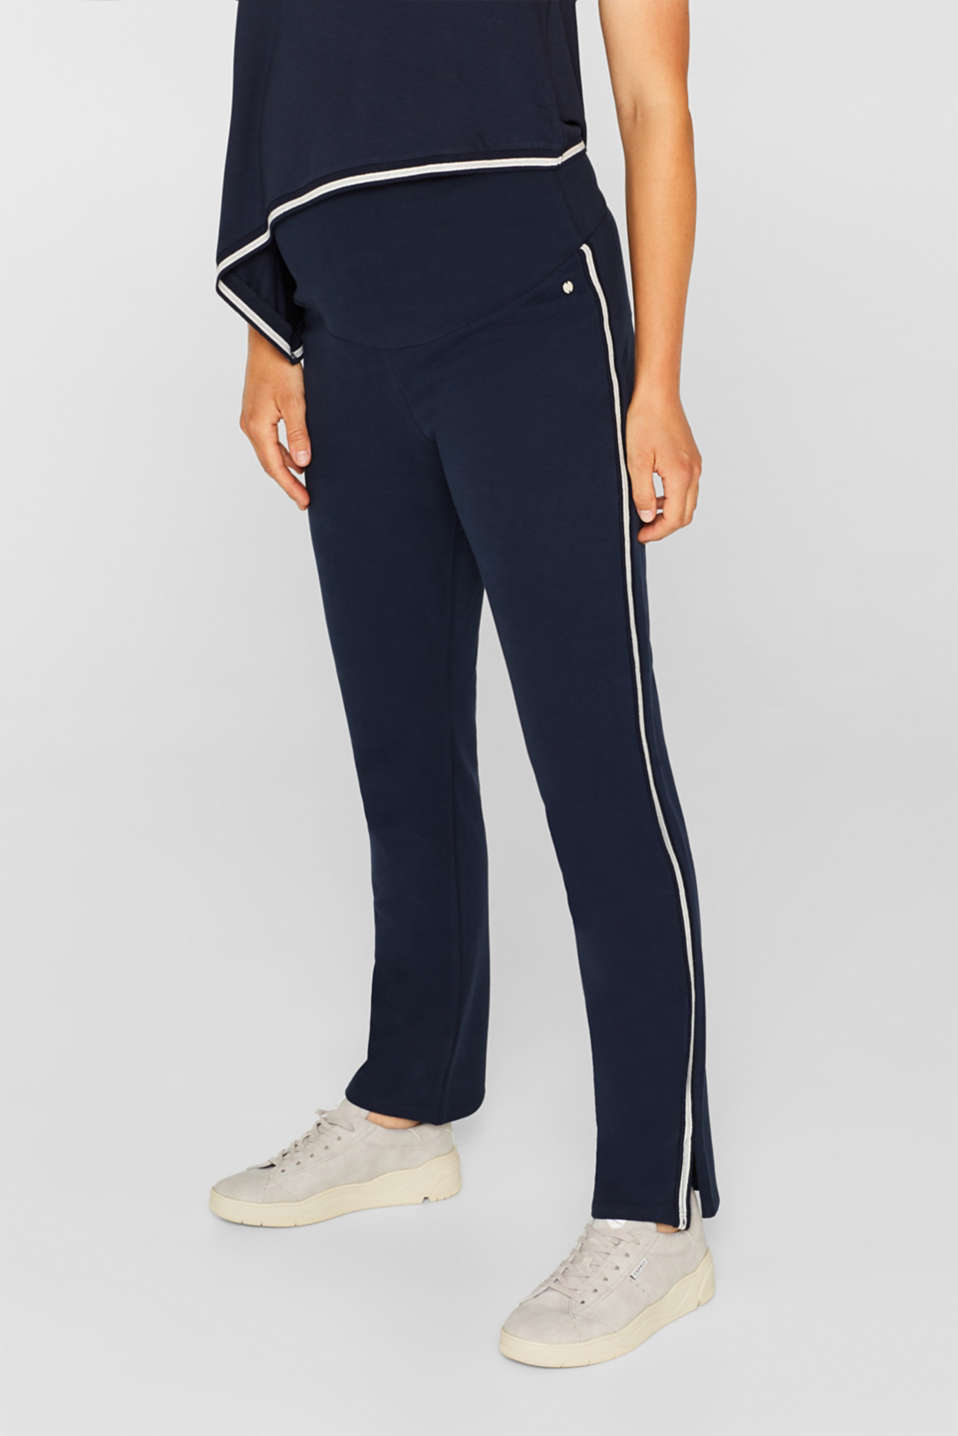 Stretch jersey trousers with racing stripes, LCNIGHT BLUE, detail image number 5